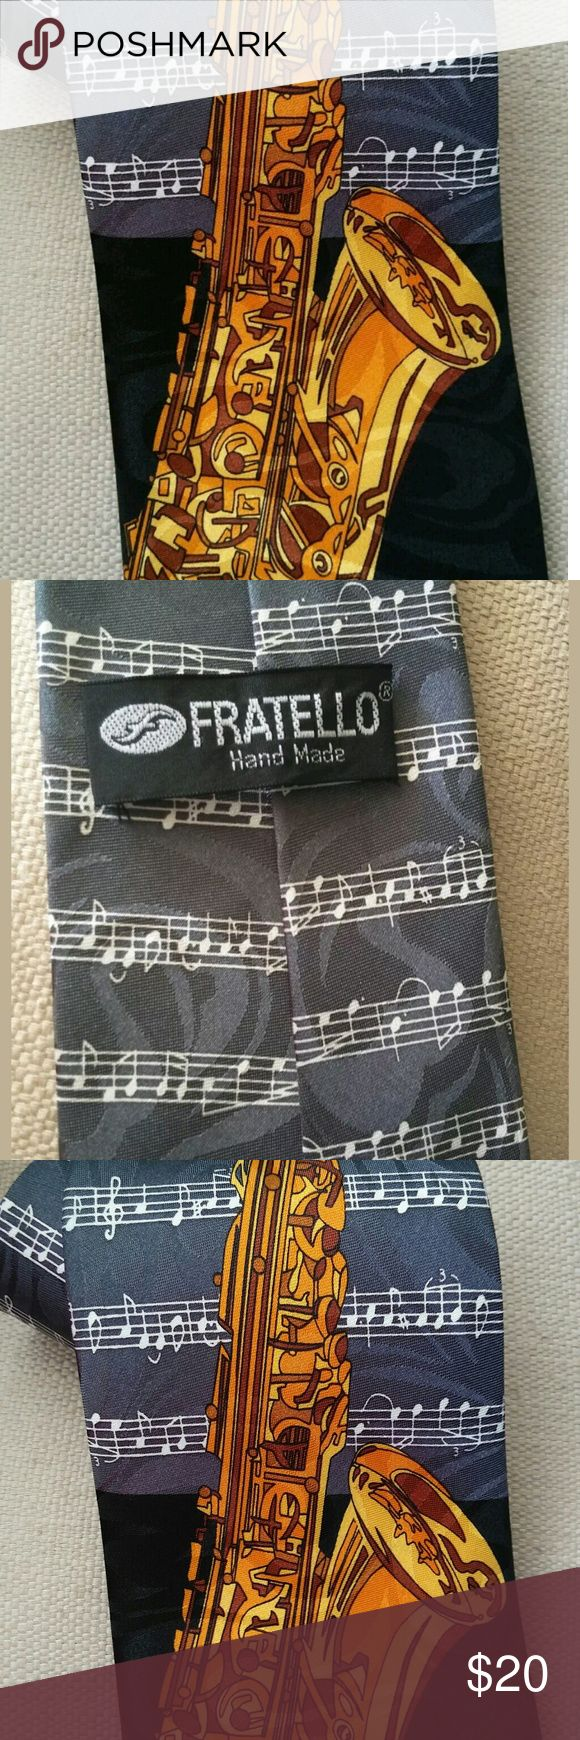 Beautiful Saxophone Musical Tie Beautiful tie in good condition. Tie has no issues. Please note the tag with fabric type is missing. Small spot included in picture. Fratello Accessories Ties